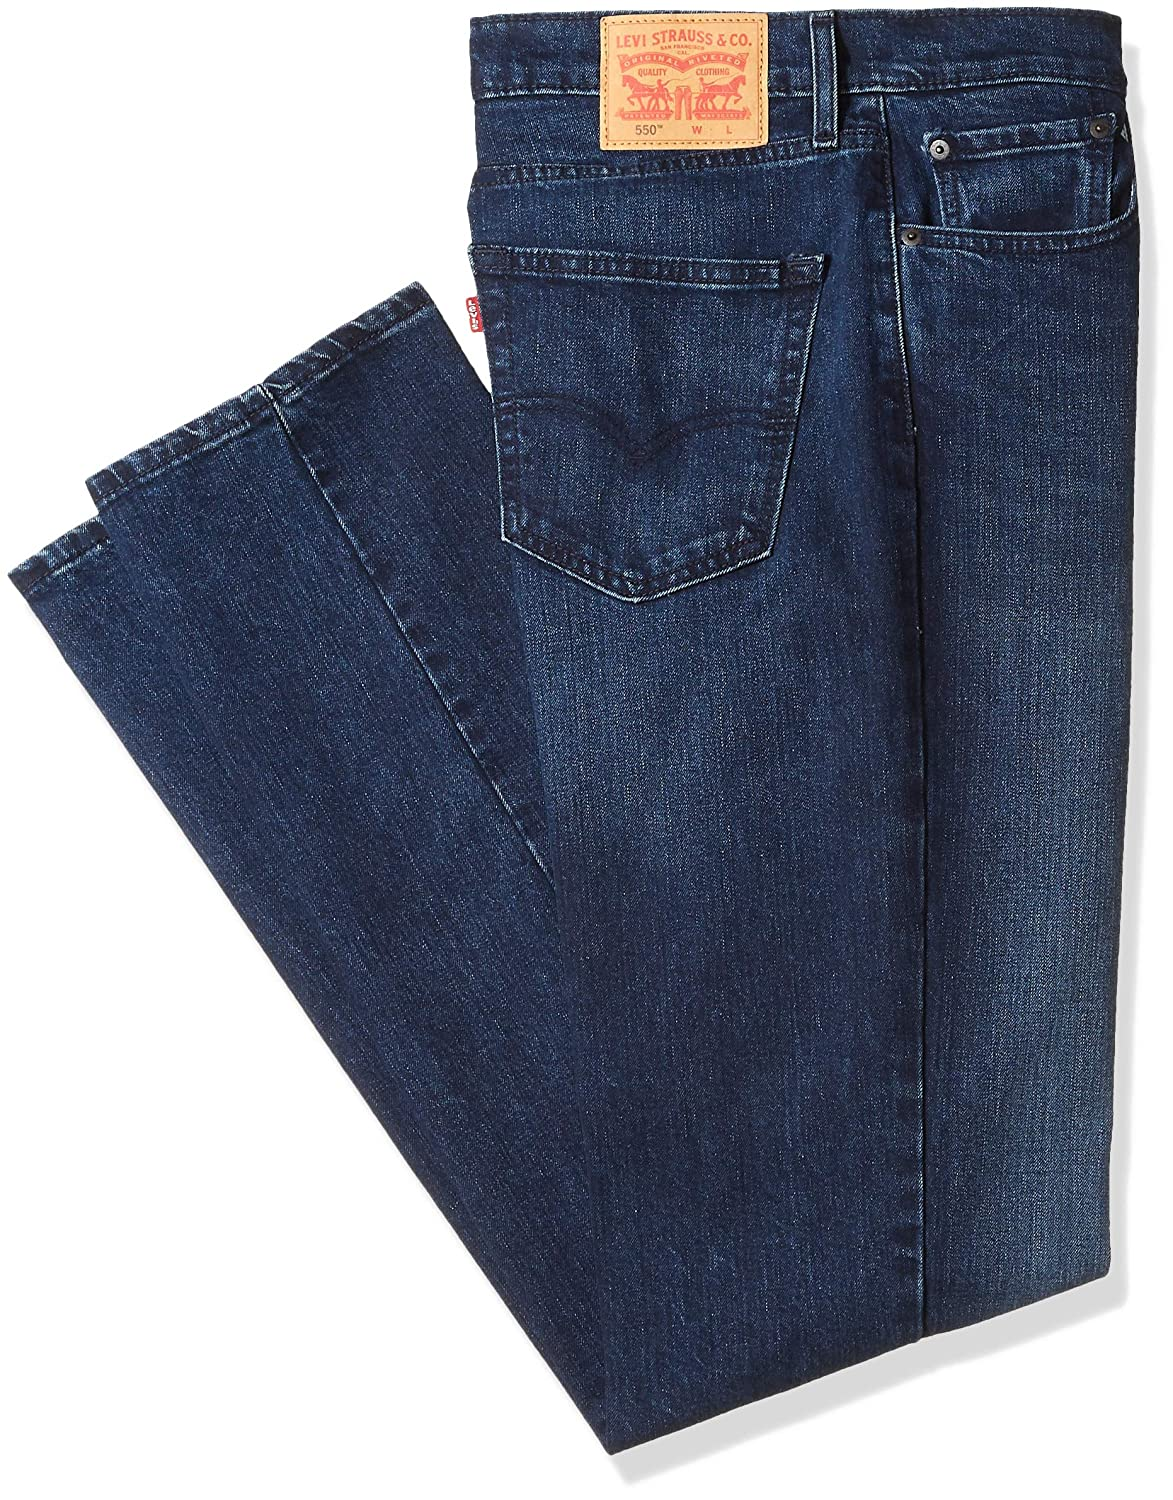 59f42248e0b Relaxed through thigh. Slightly tapered leg. Zip fly with button closure.  Wash and dry inside out with like colors; liquid detergent is recommended